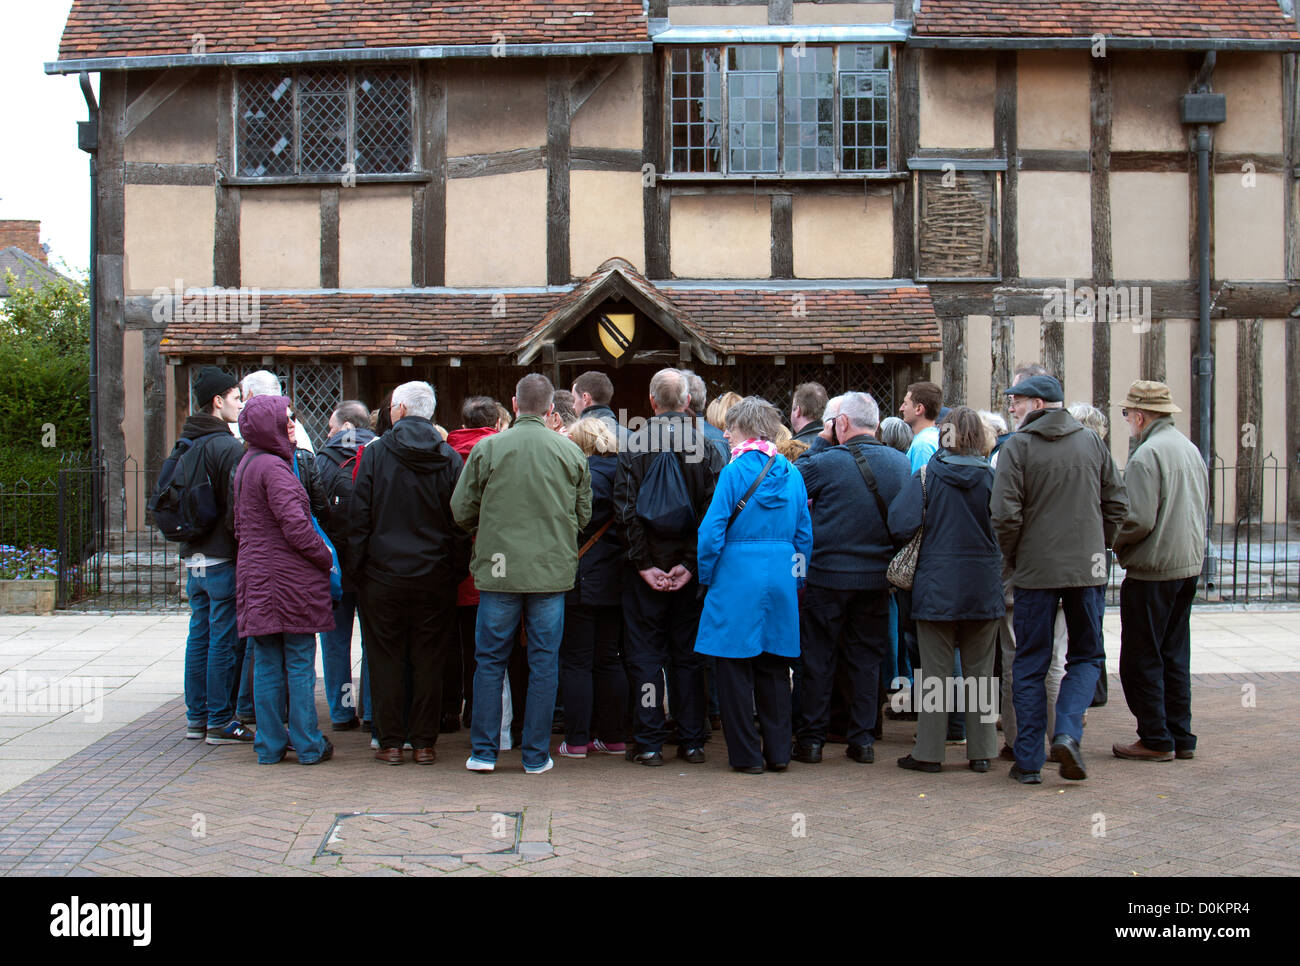 A guided tour outside William Shakespeare`s Birthplace, Stratford-upon-Avon, UK - Stock Image